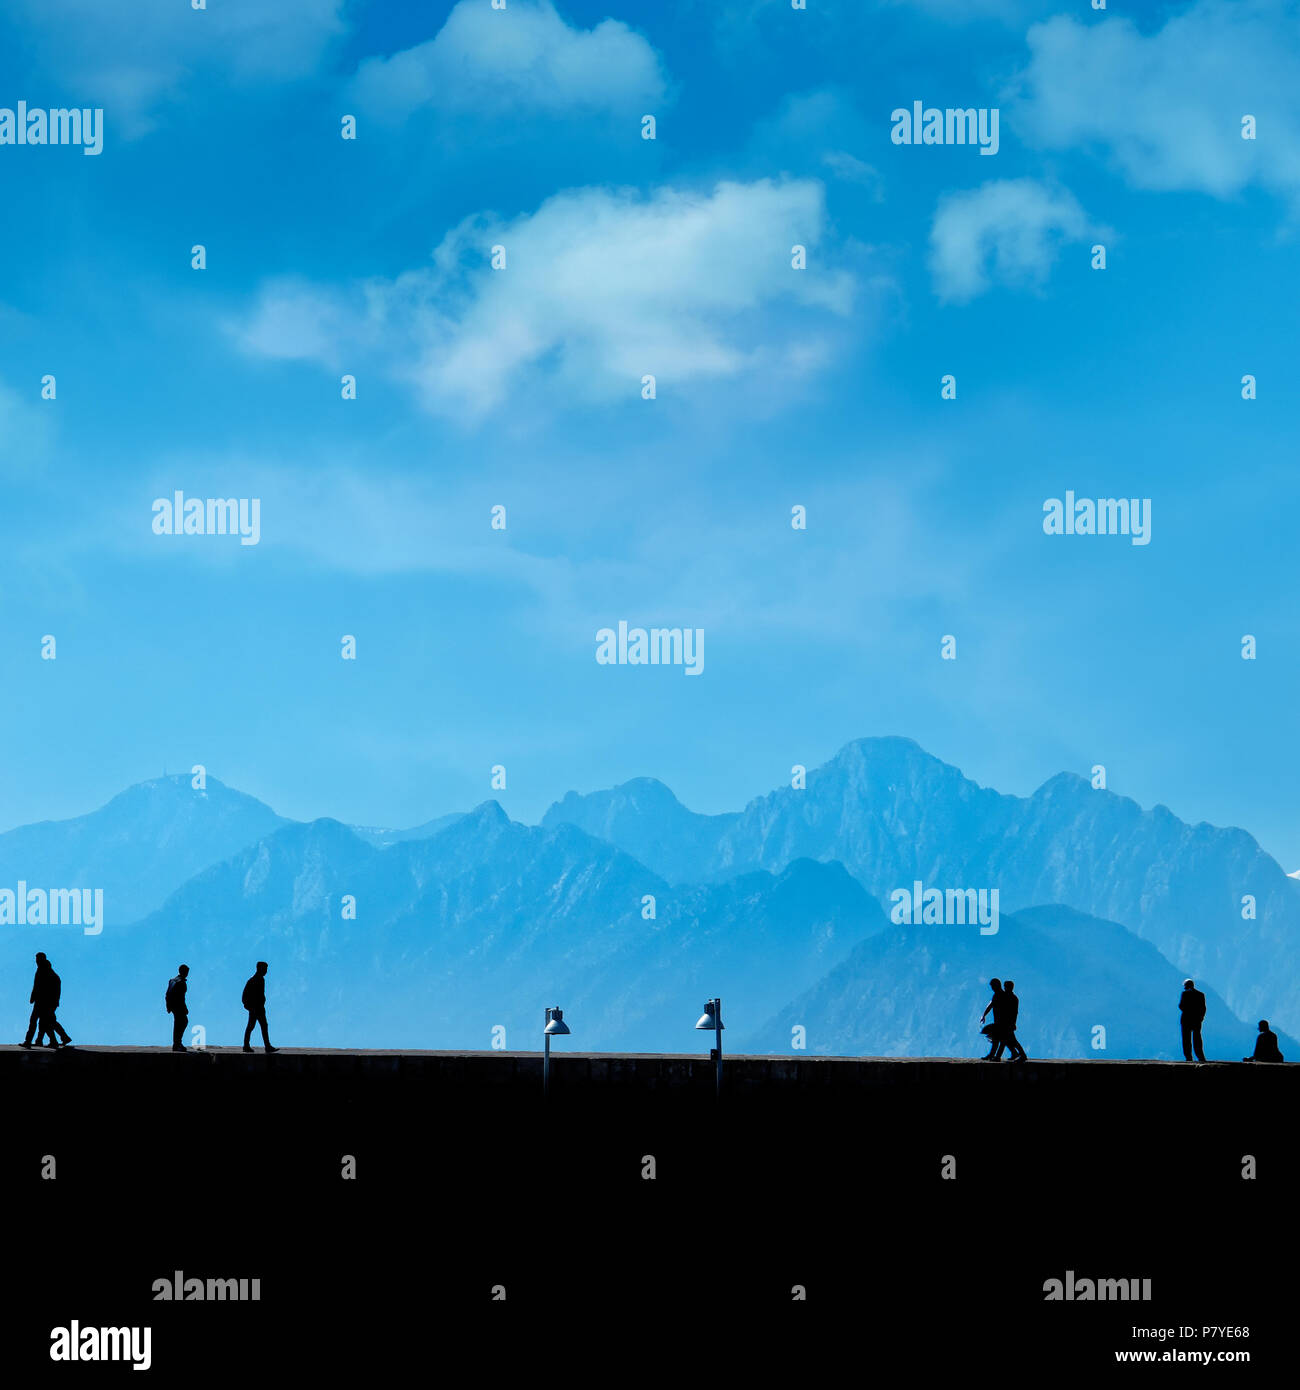 Silhouetted  people relaxing on street over blue sky and high mountains - Stock Image